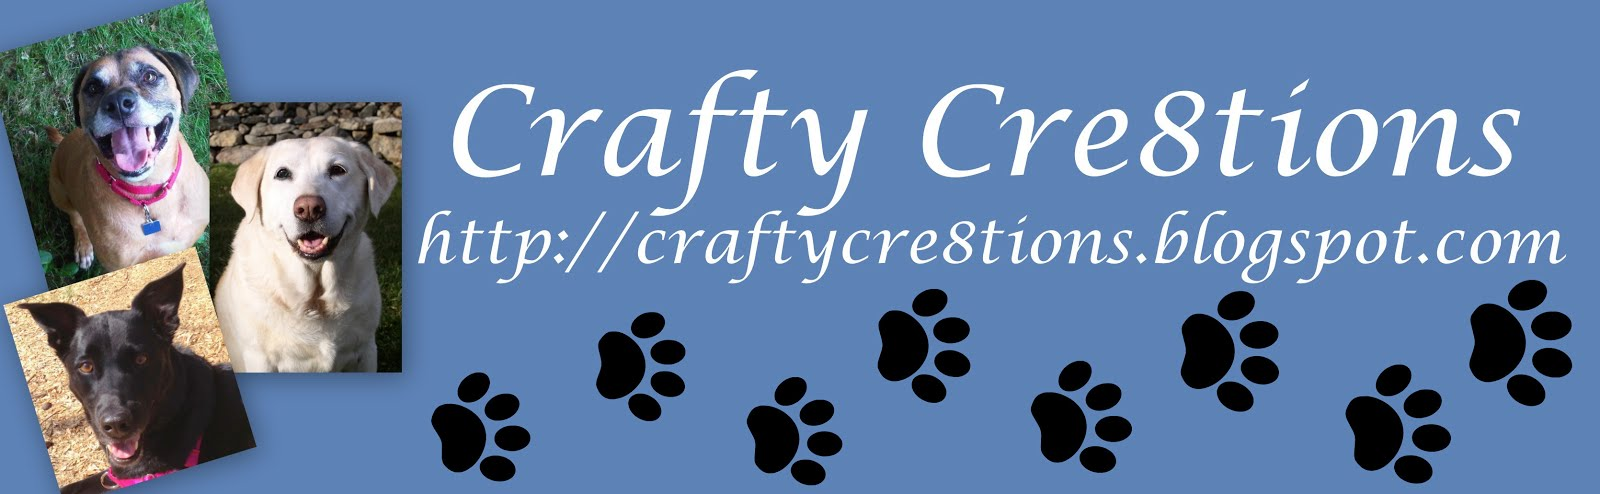 Crafty Cre8tions